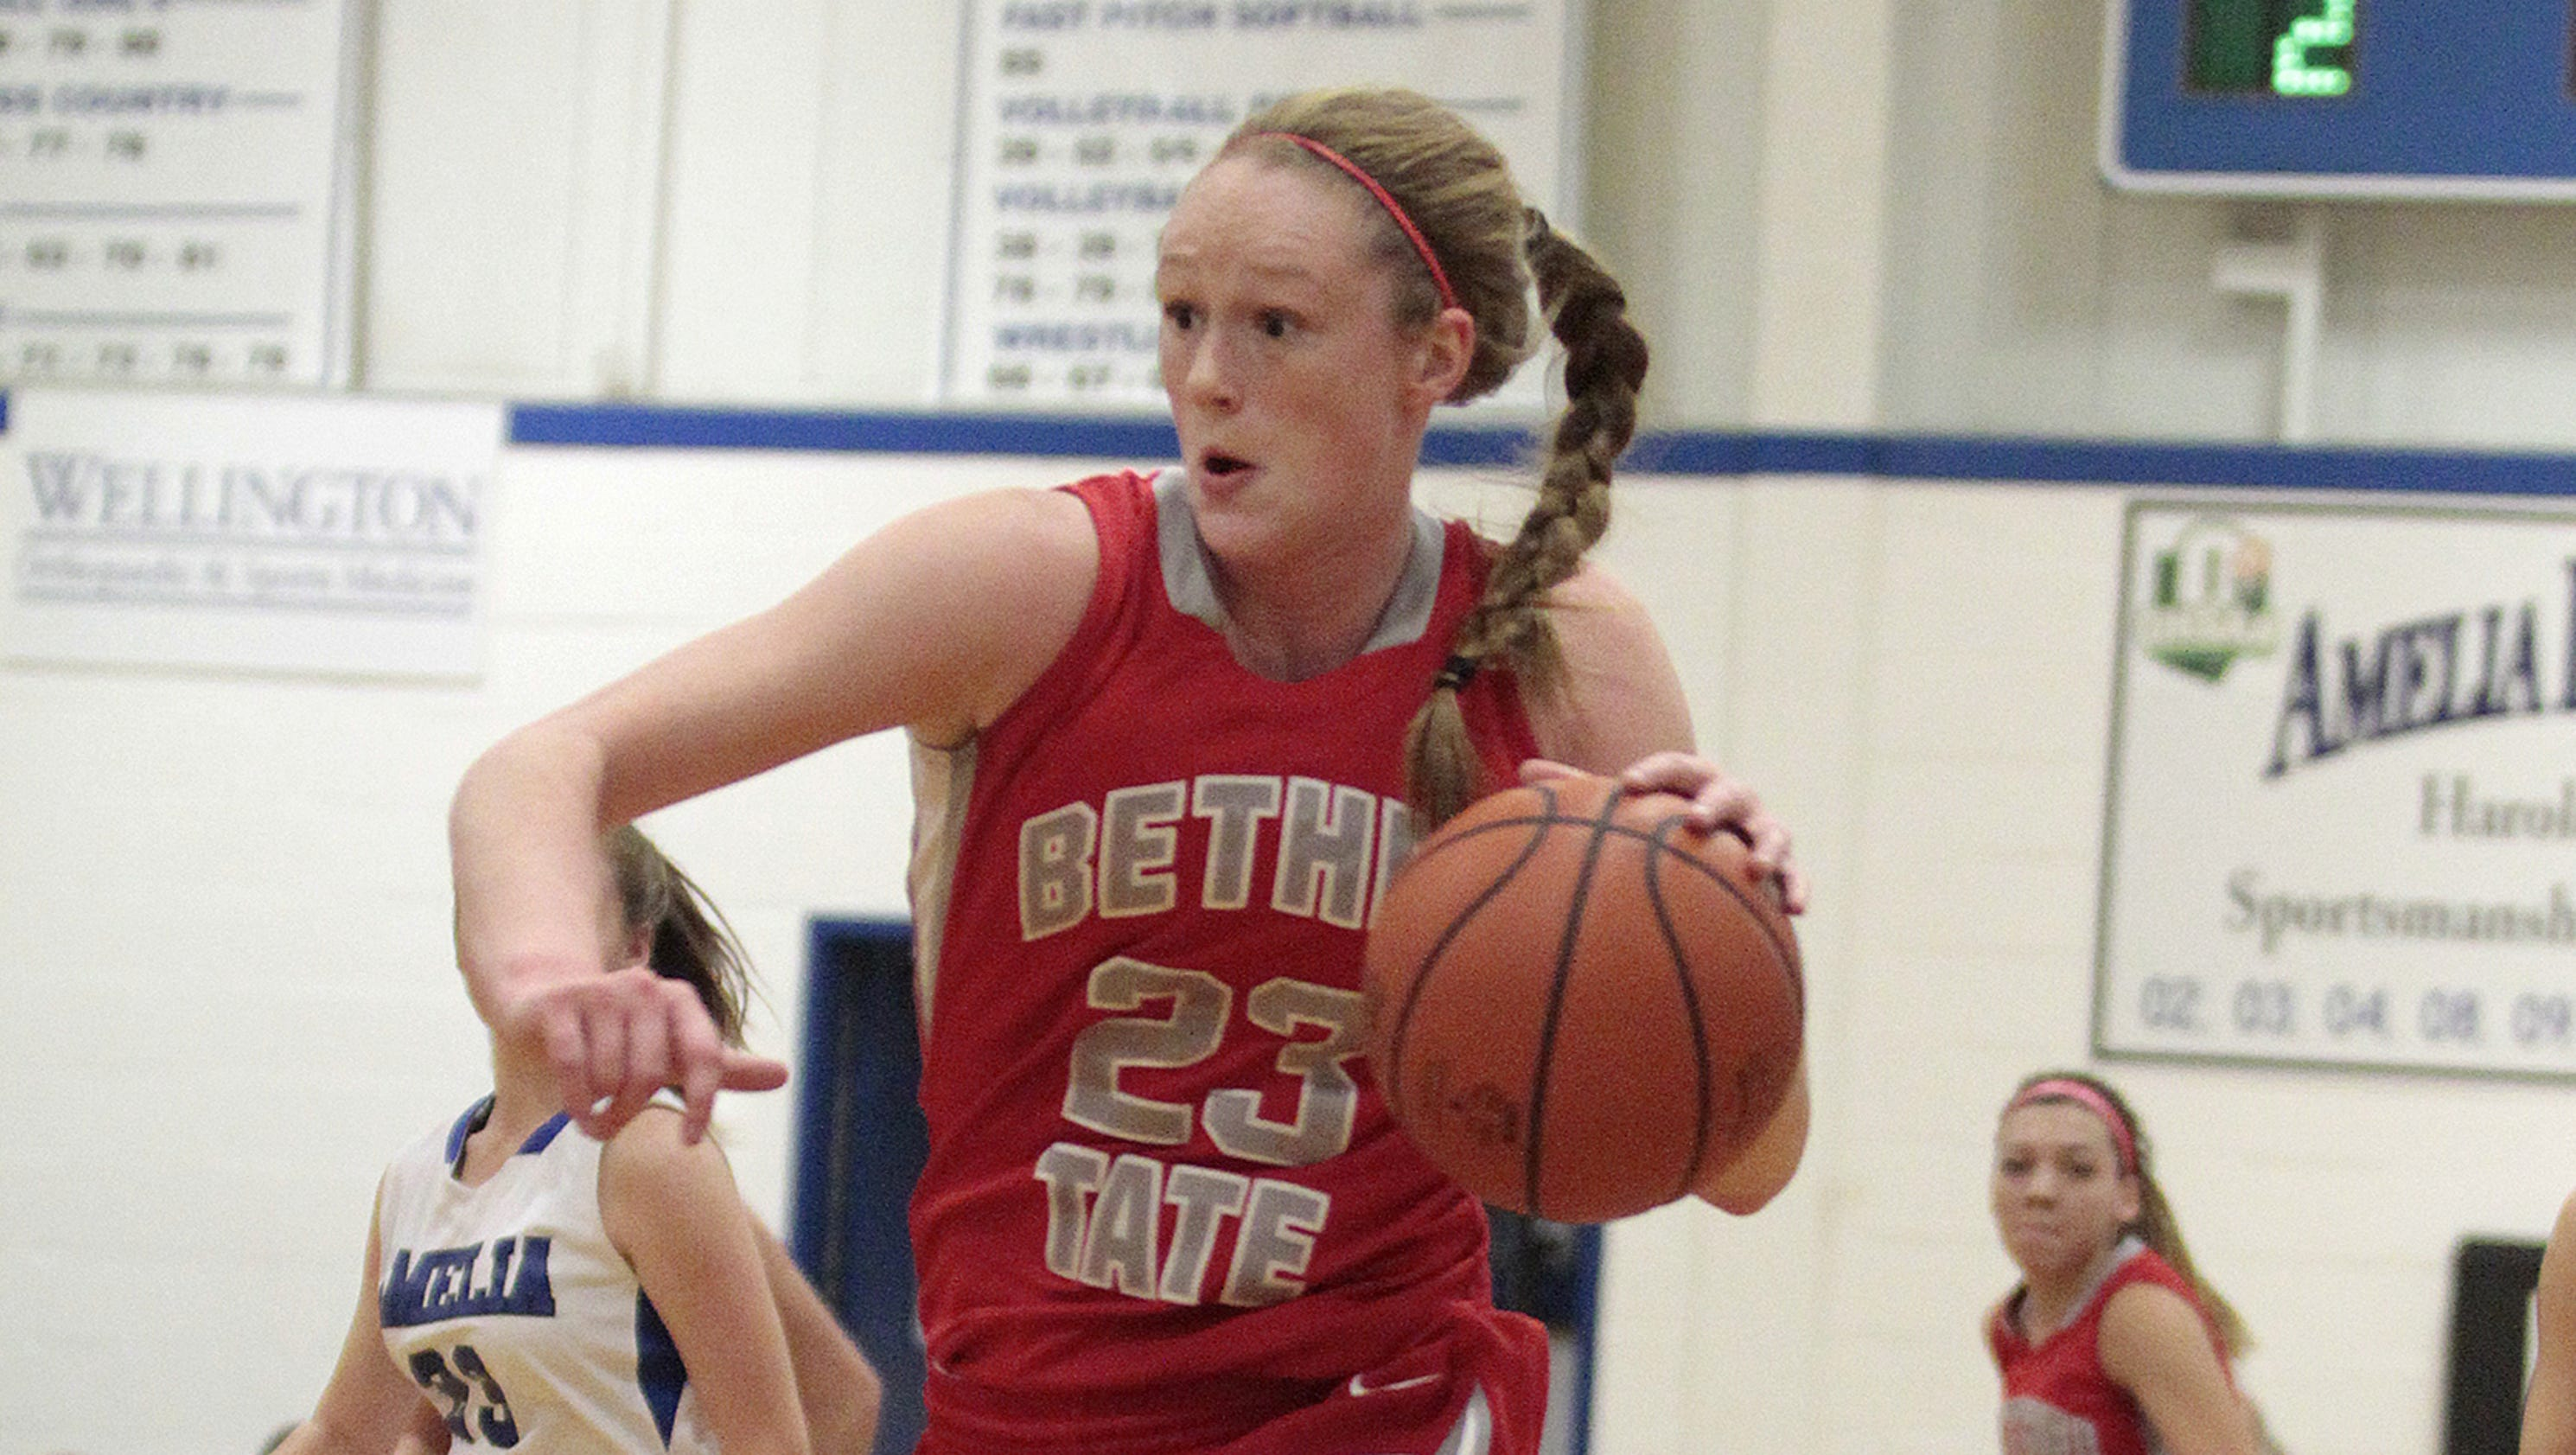 bethel girls Sugar grove — bethel's bailey younce scored 25 points, but it wasn't enough to push bethel past visiting parkway dec 14.